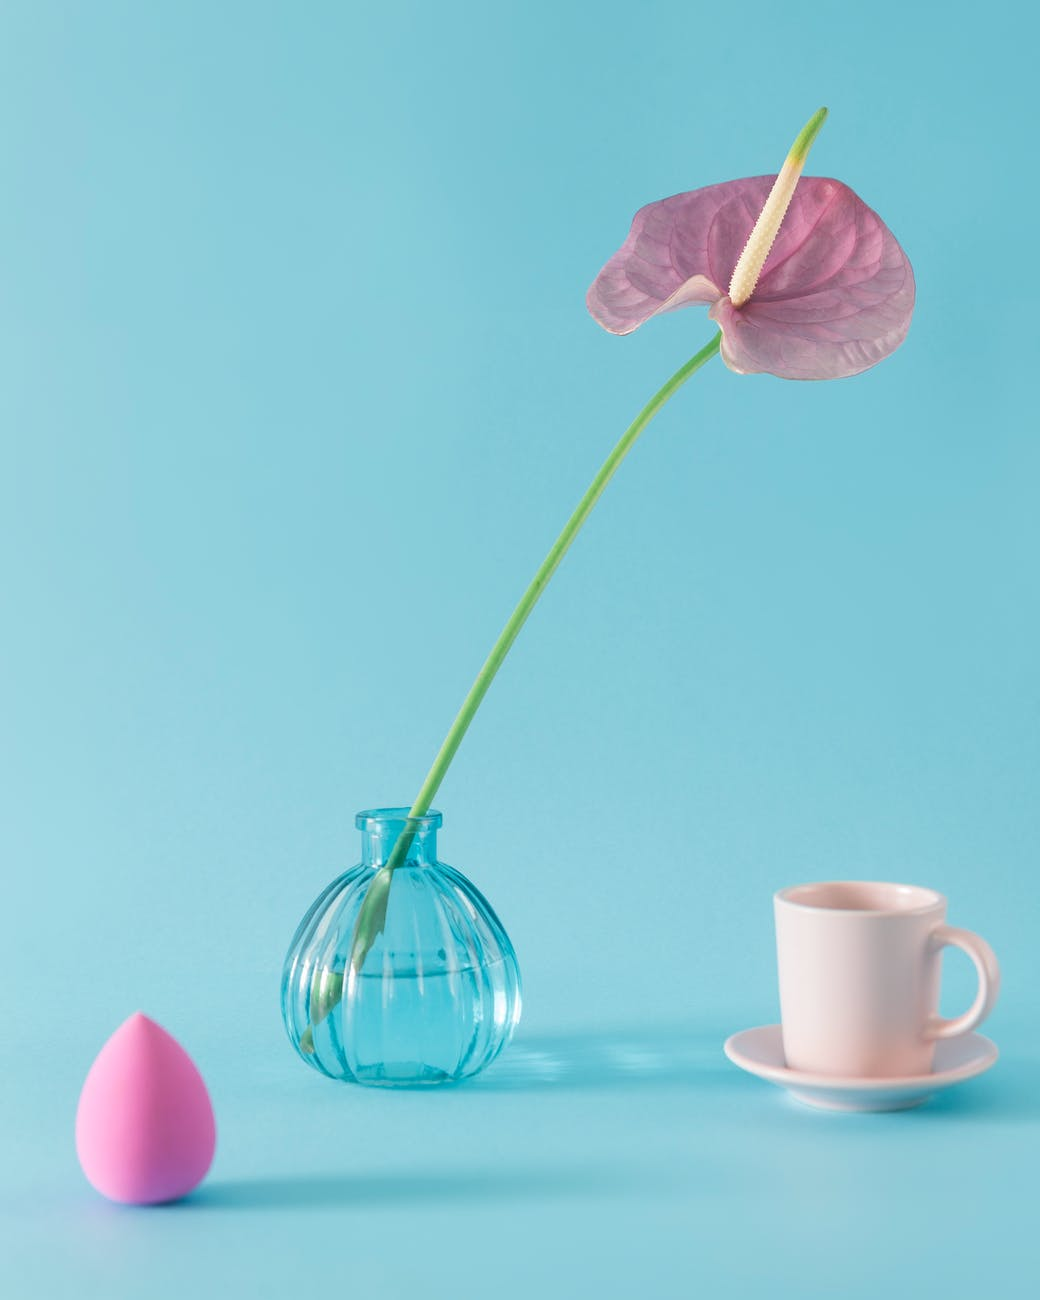 pink anthurium in vase near makeup sponge and cup